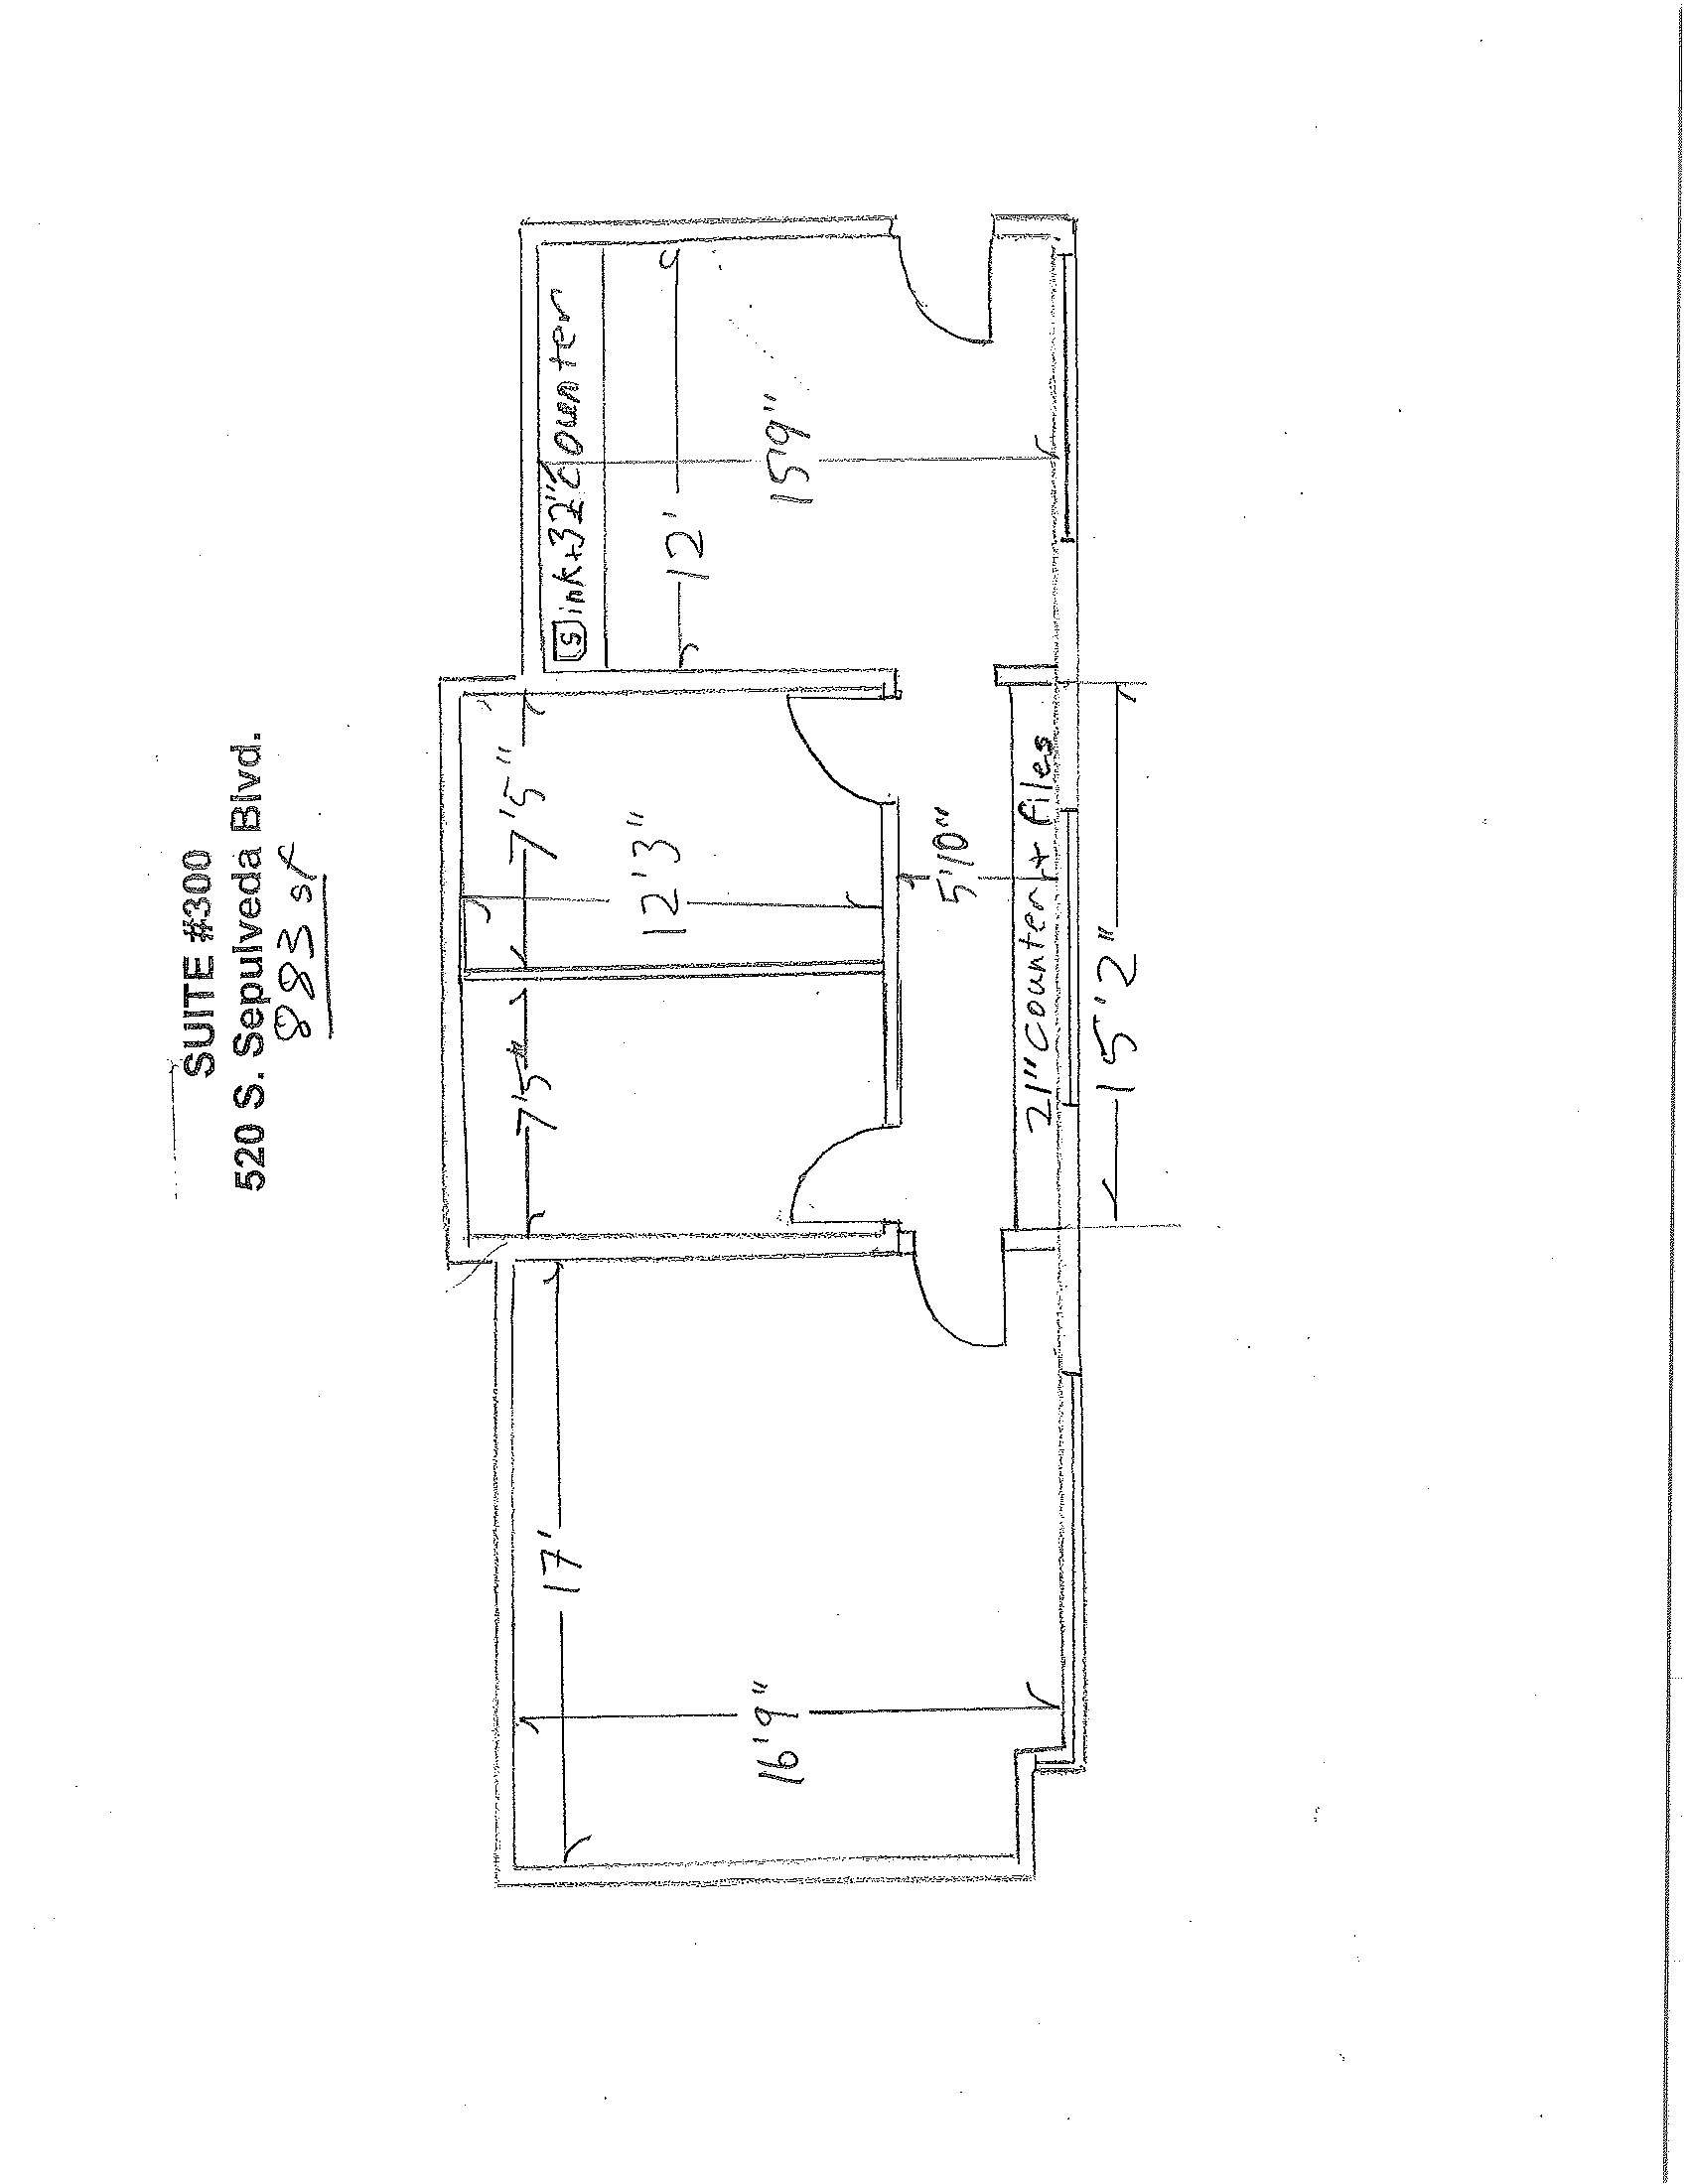 Suite 300 Floor Plan